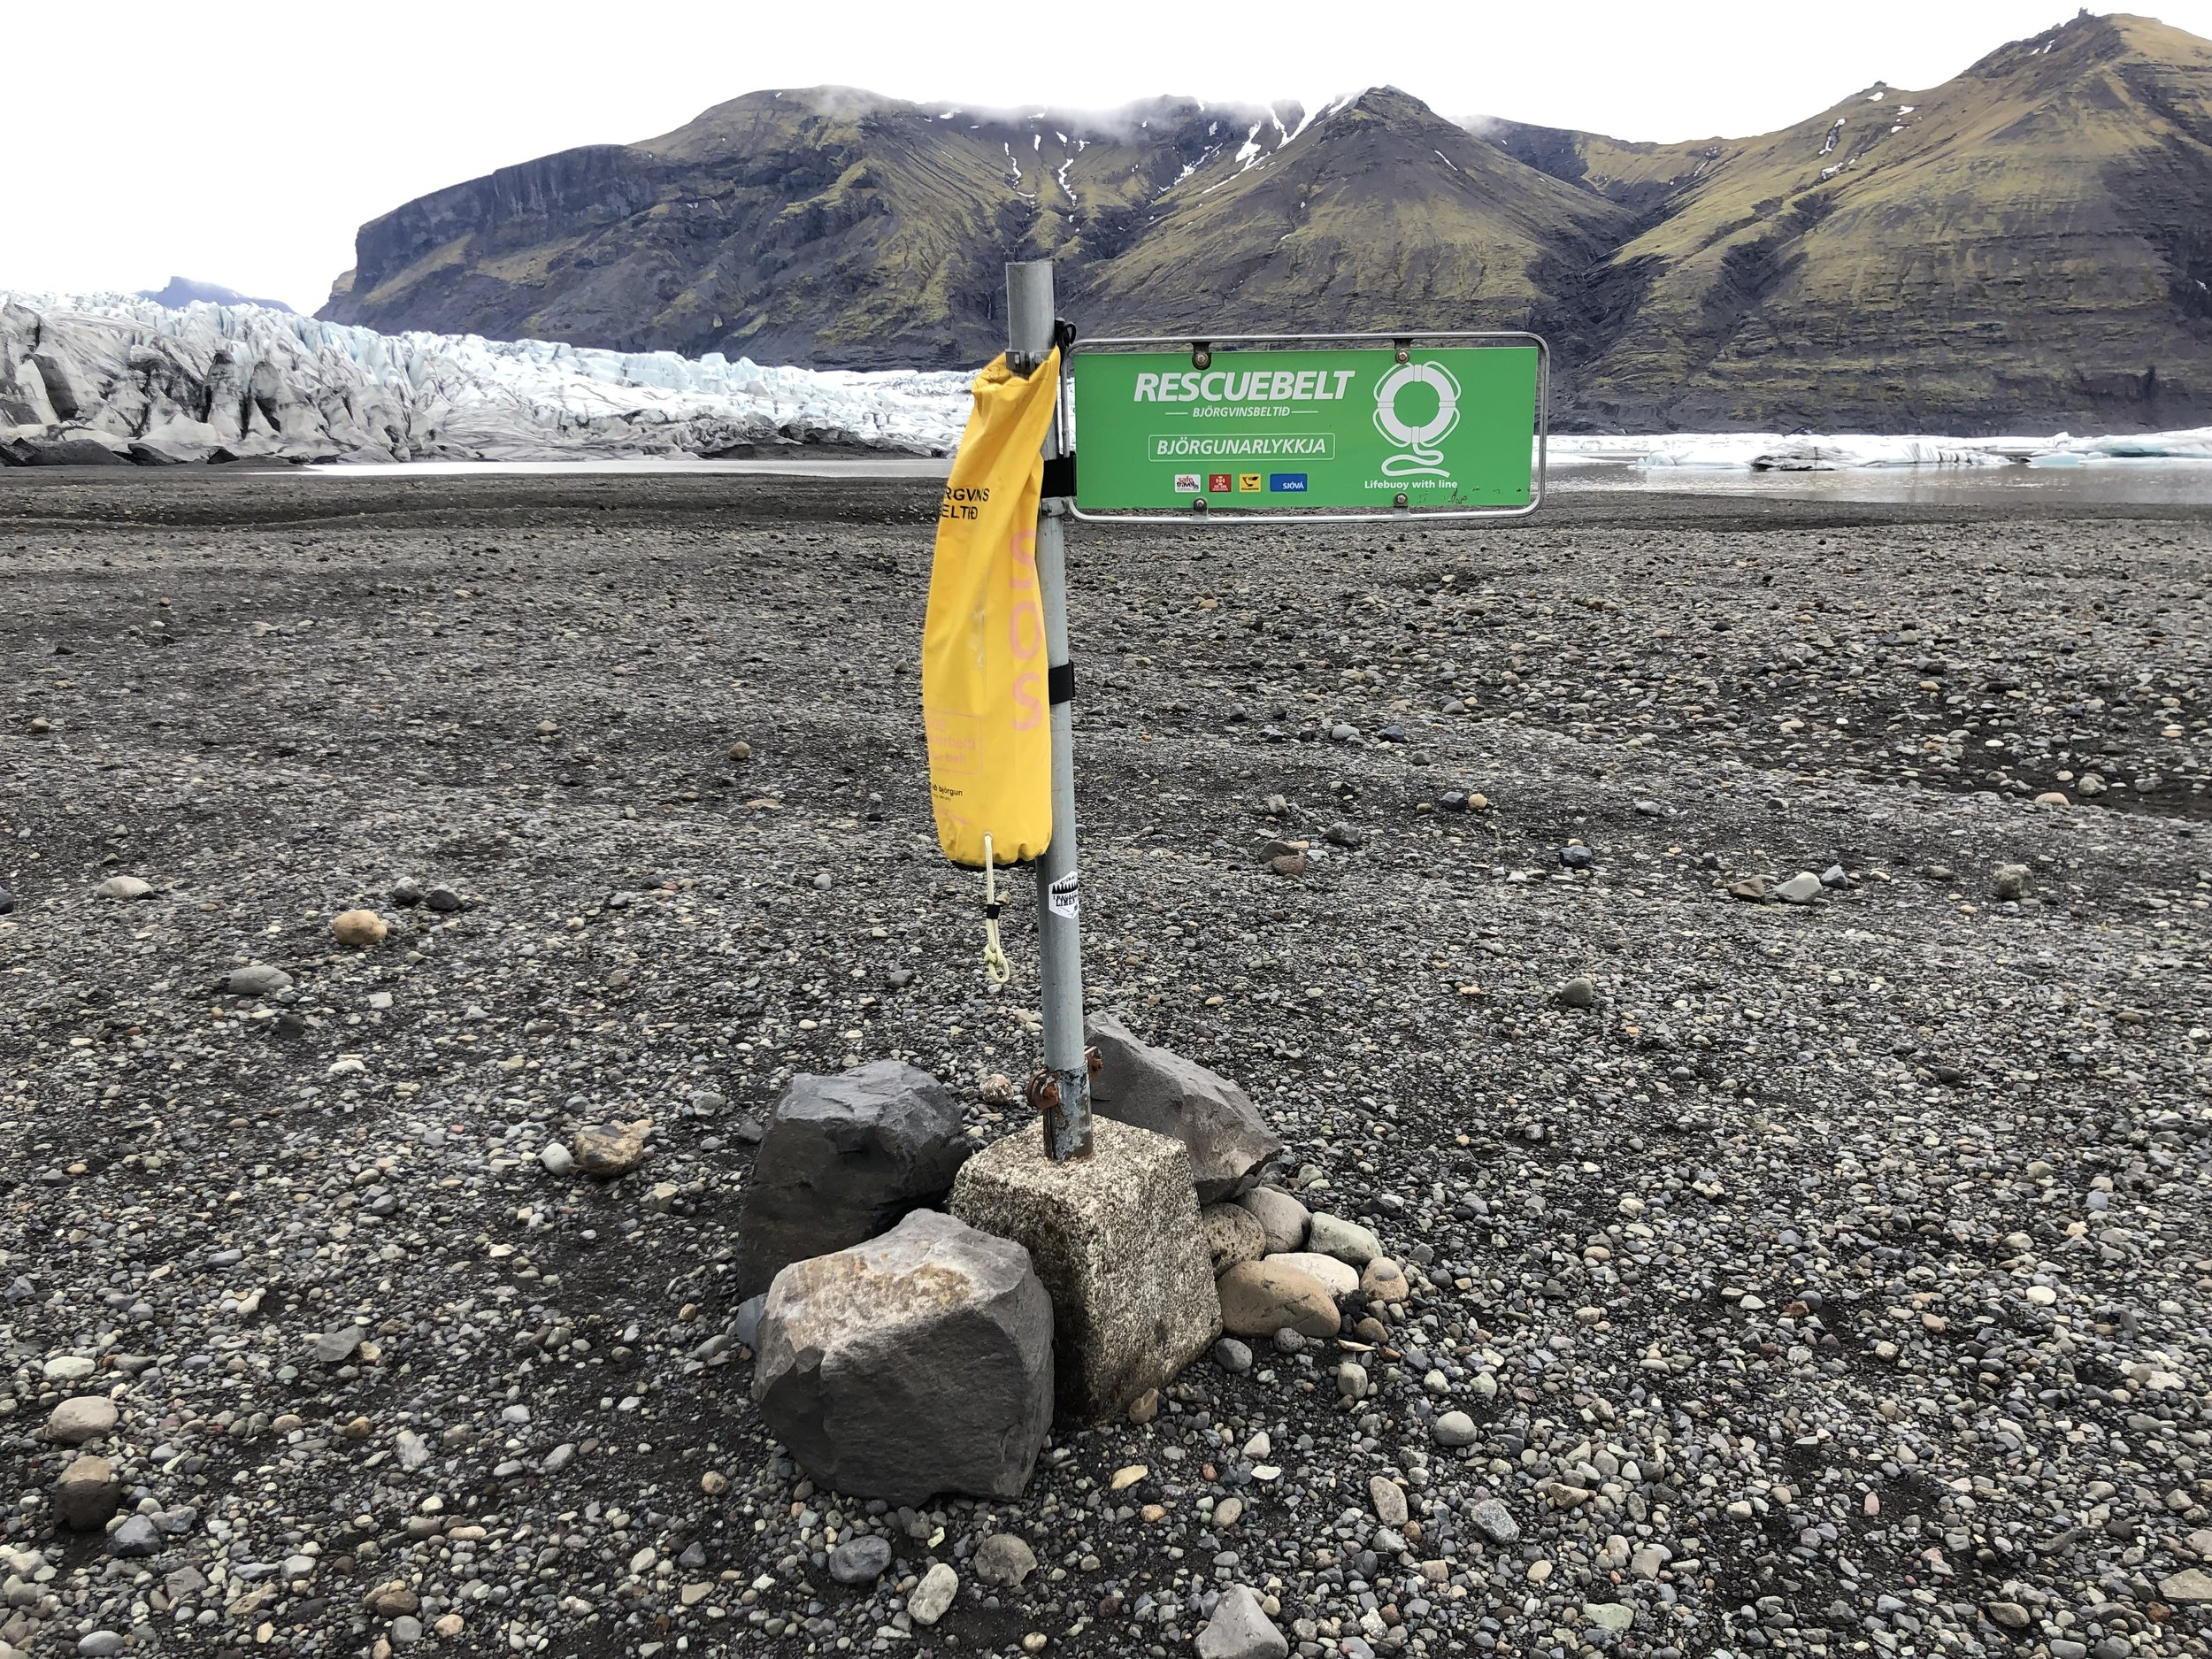 A rescue buoy to save the life of someone foolish enough to take a swim in a glacial lake.